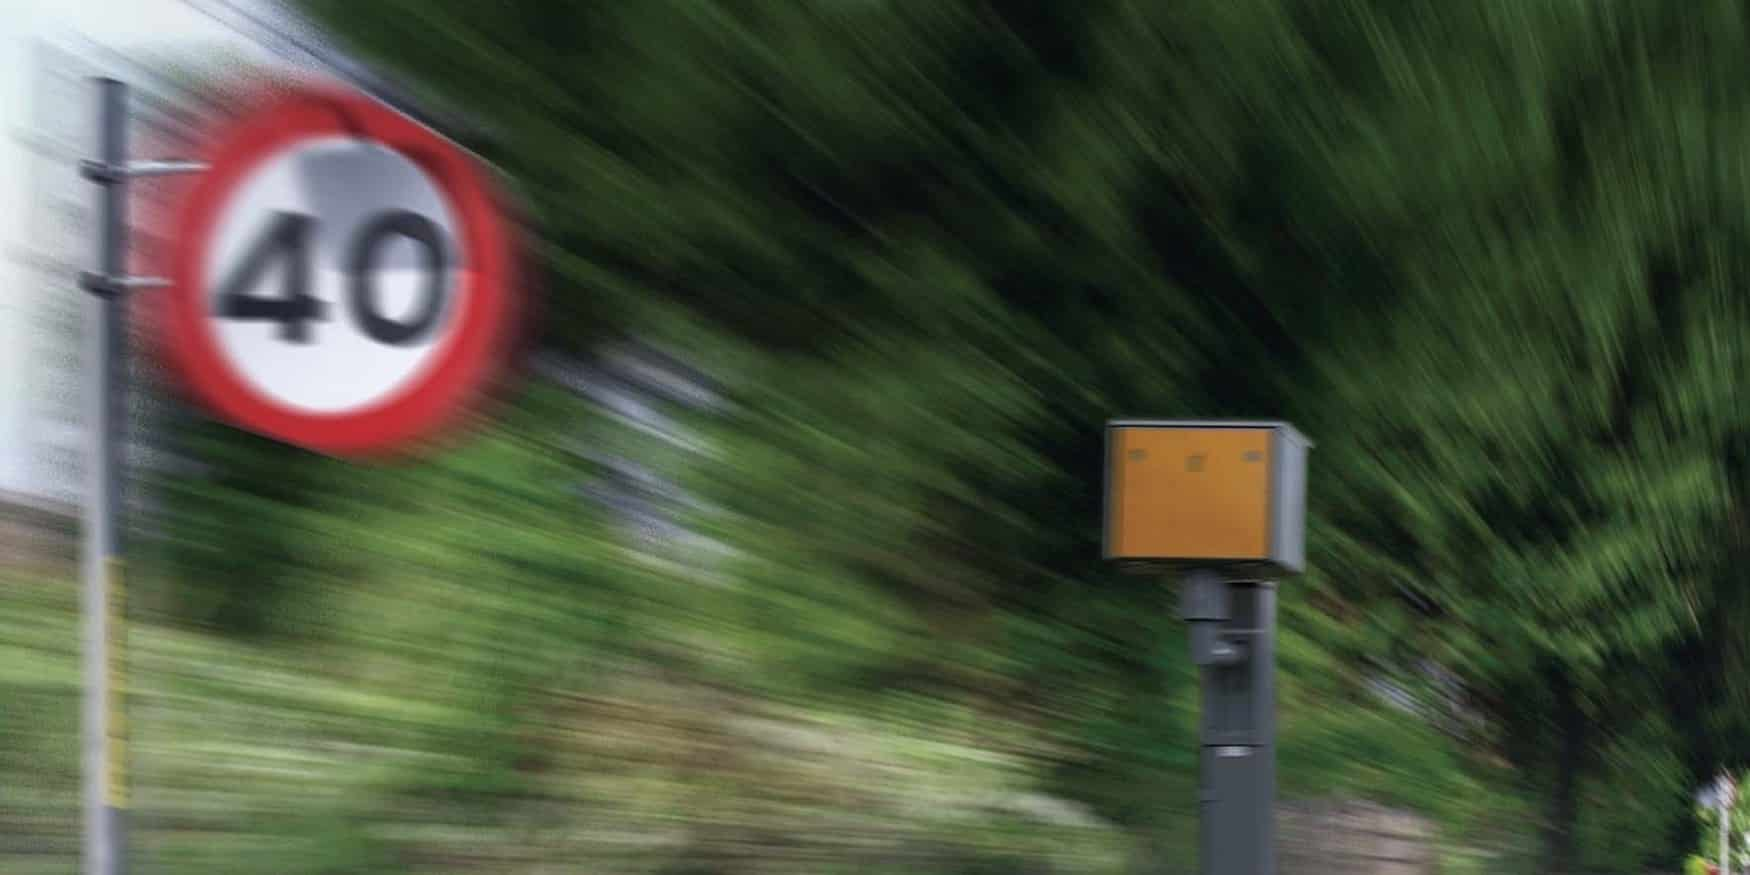 I was caught speeding by a speed camera - what happens now